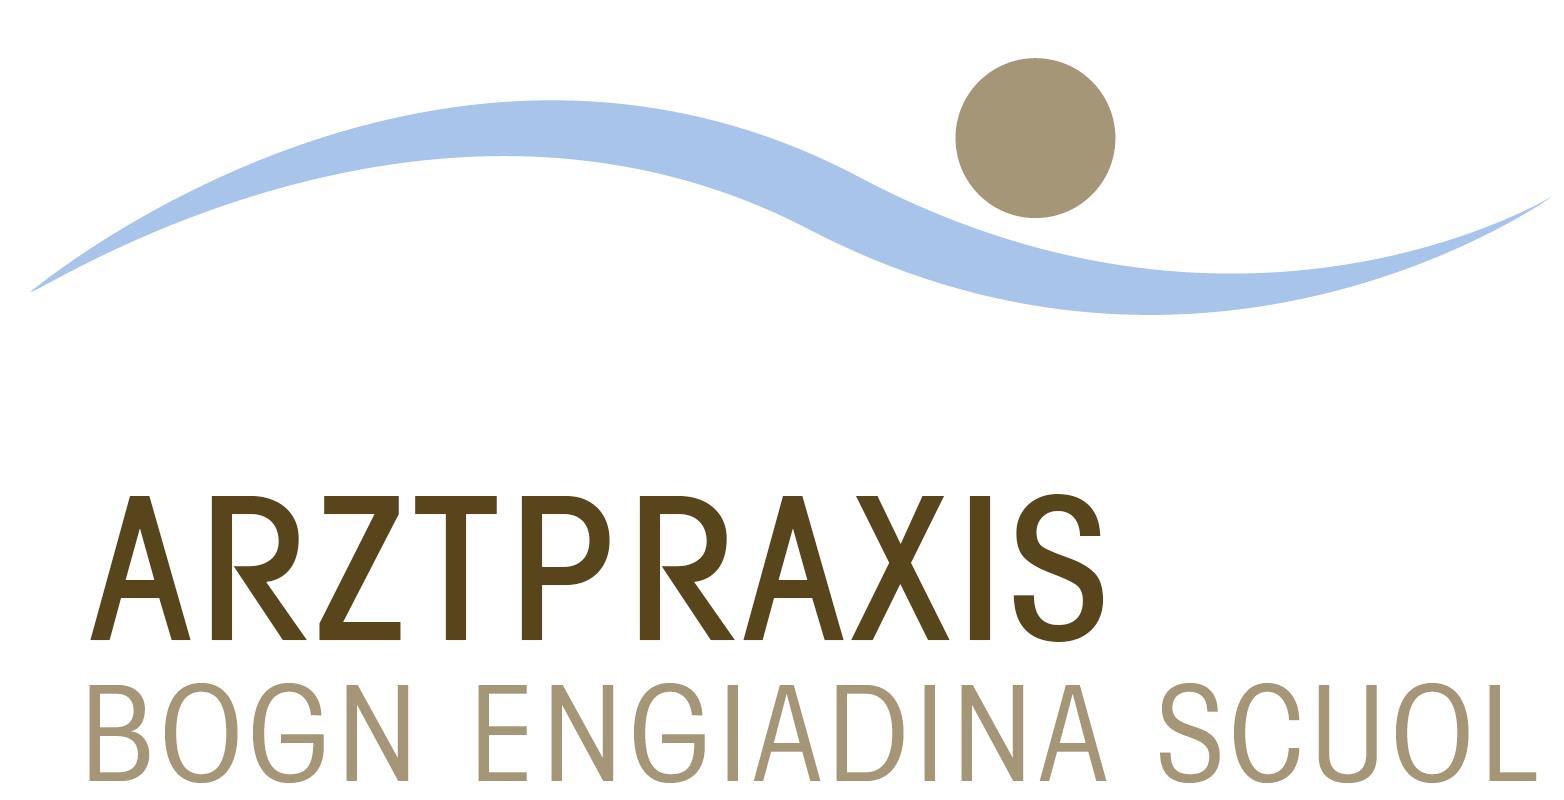 Arztpraxis Bogn Engiadina Scuol